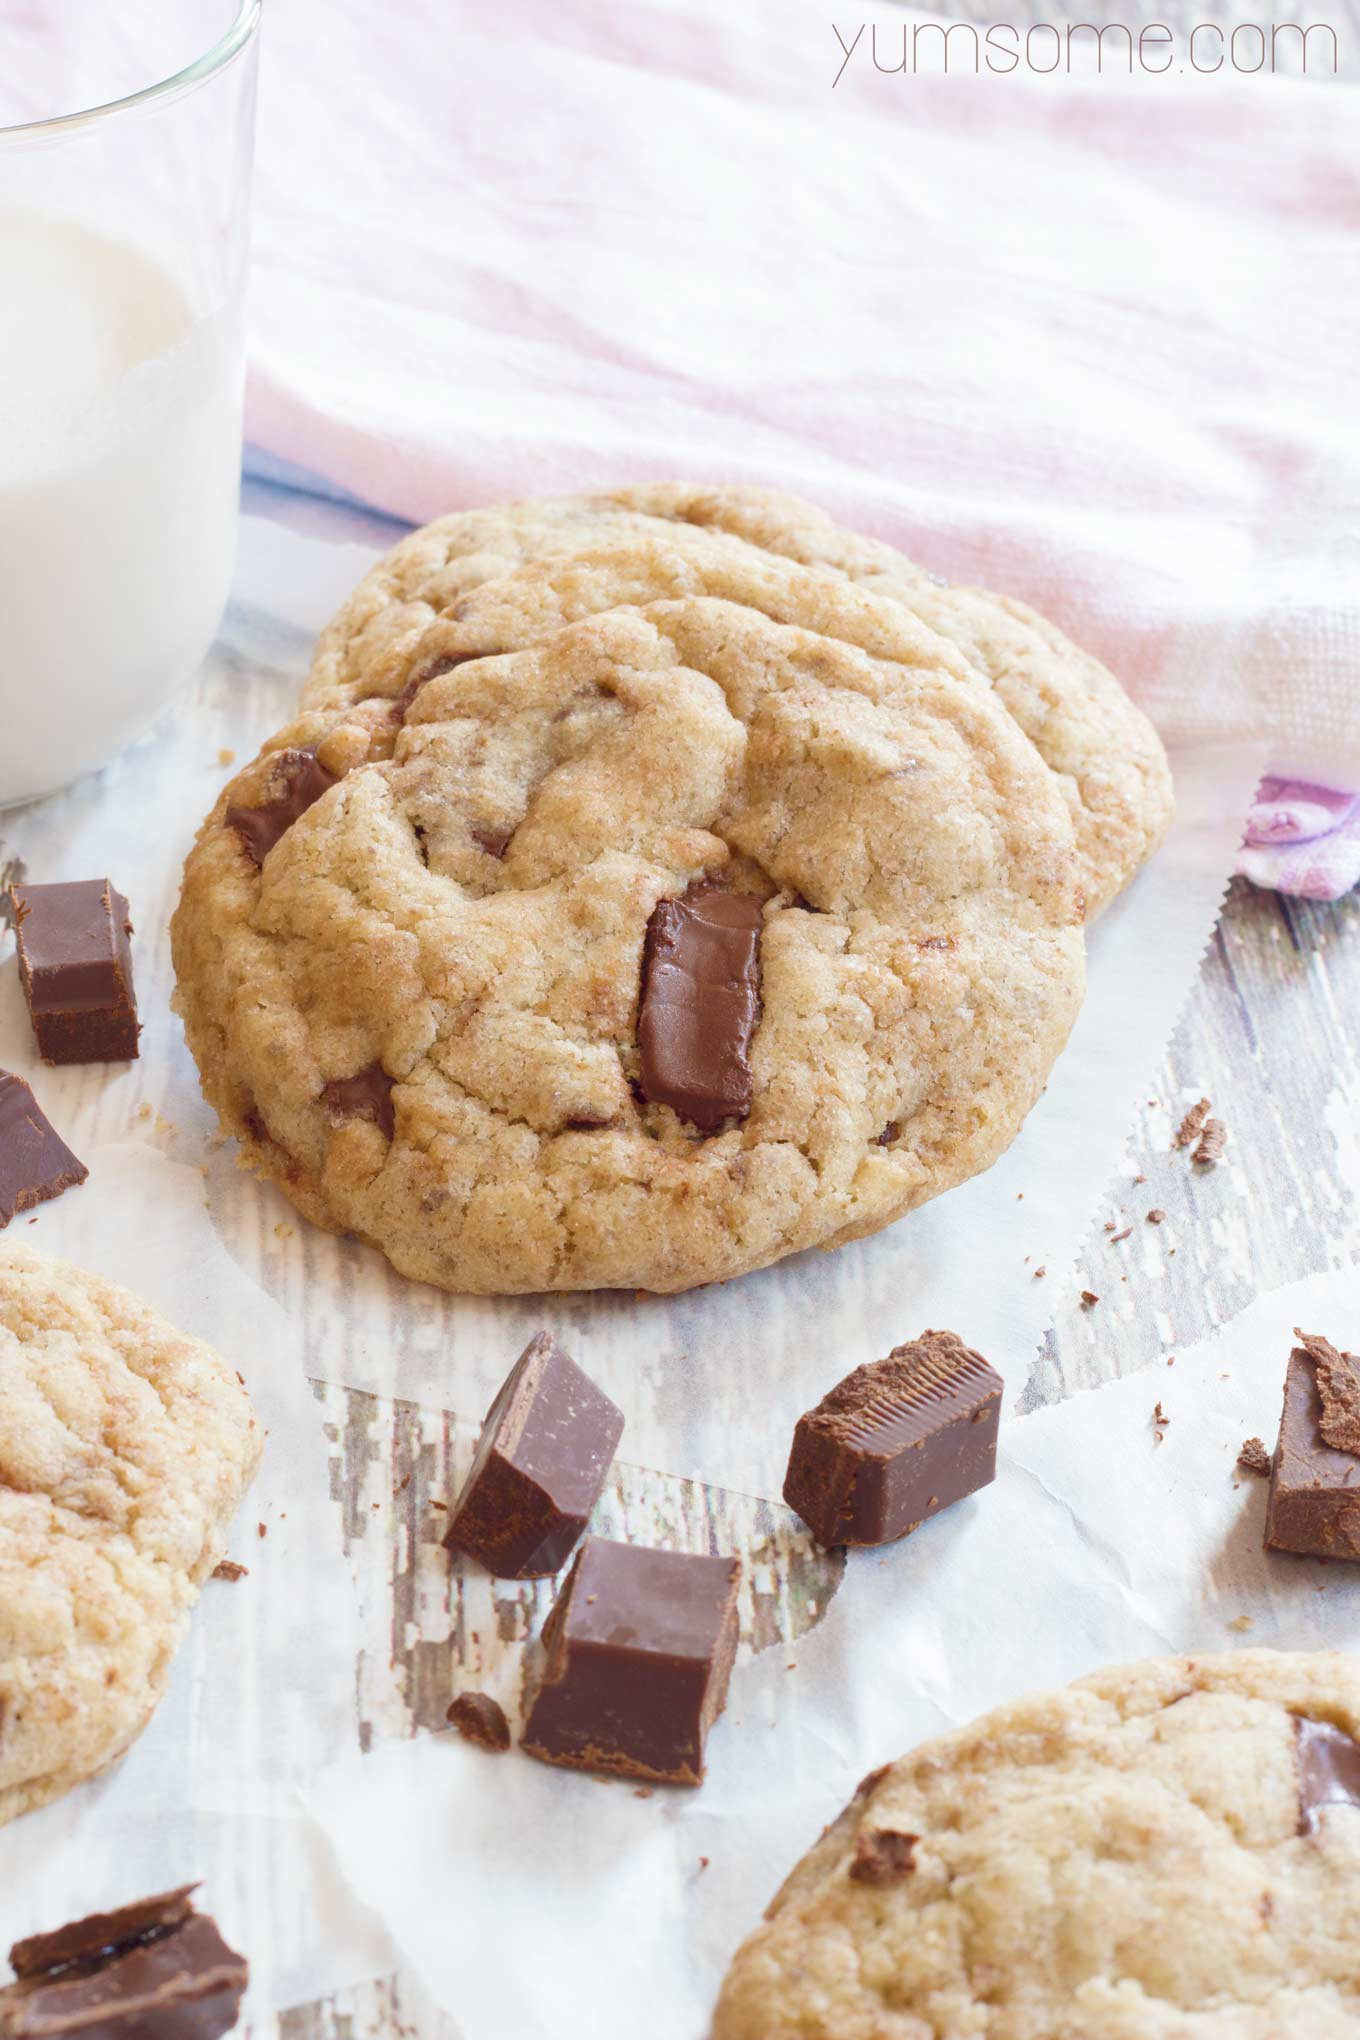 vegan choc chunk cookies with a glass of almond milk | yumsome.com